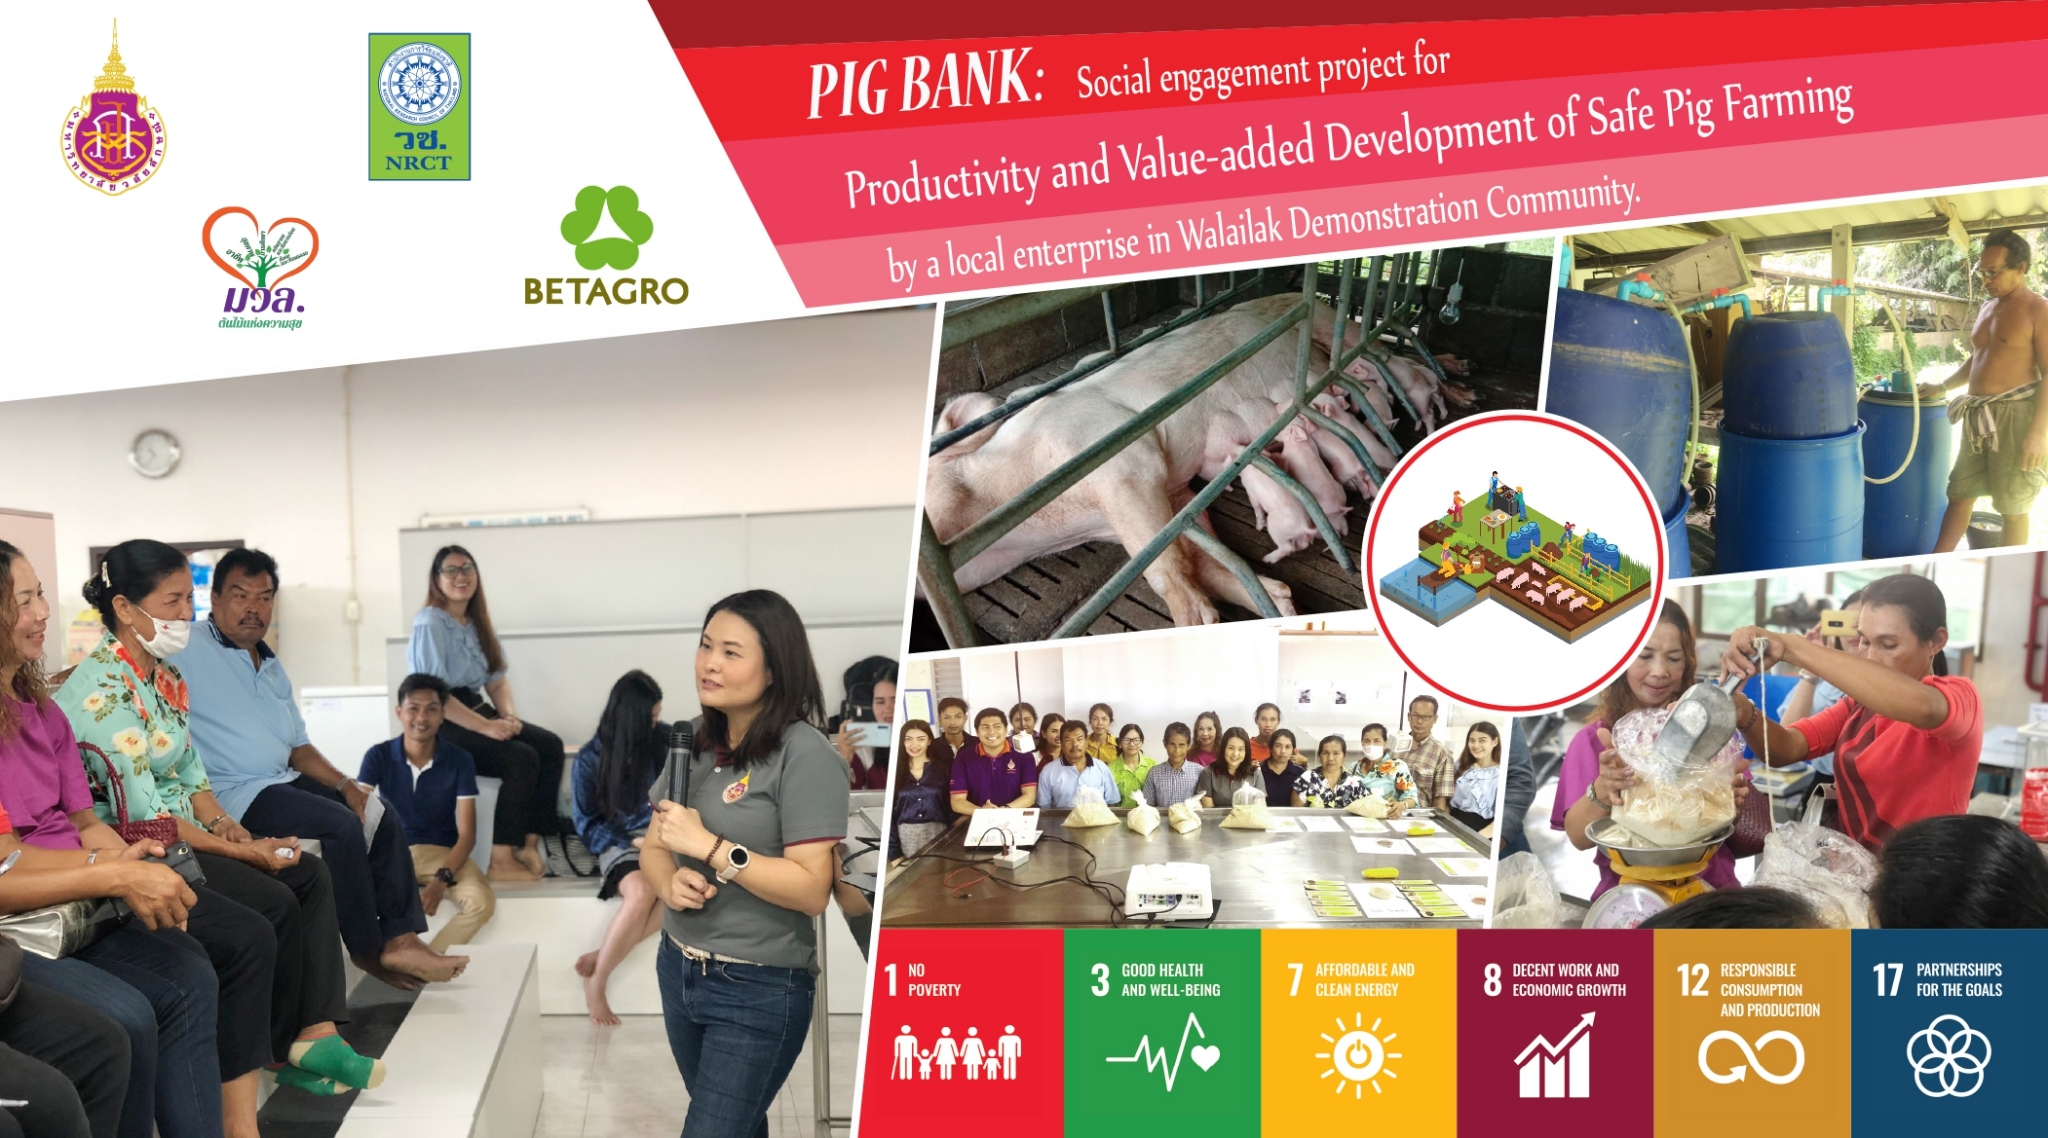 PIG BANK: Social engagement project for Productivity and Value-added Development of Safe Pig Farming by a local enterprise in Walailak Demonstration Community.